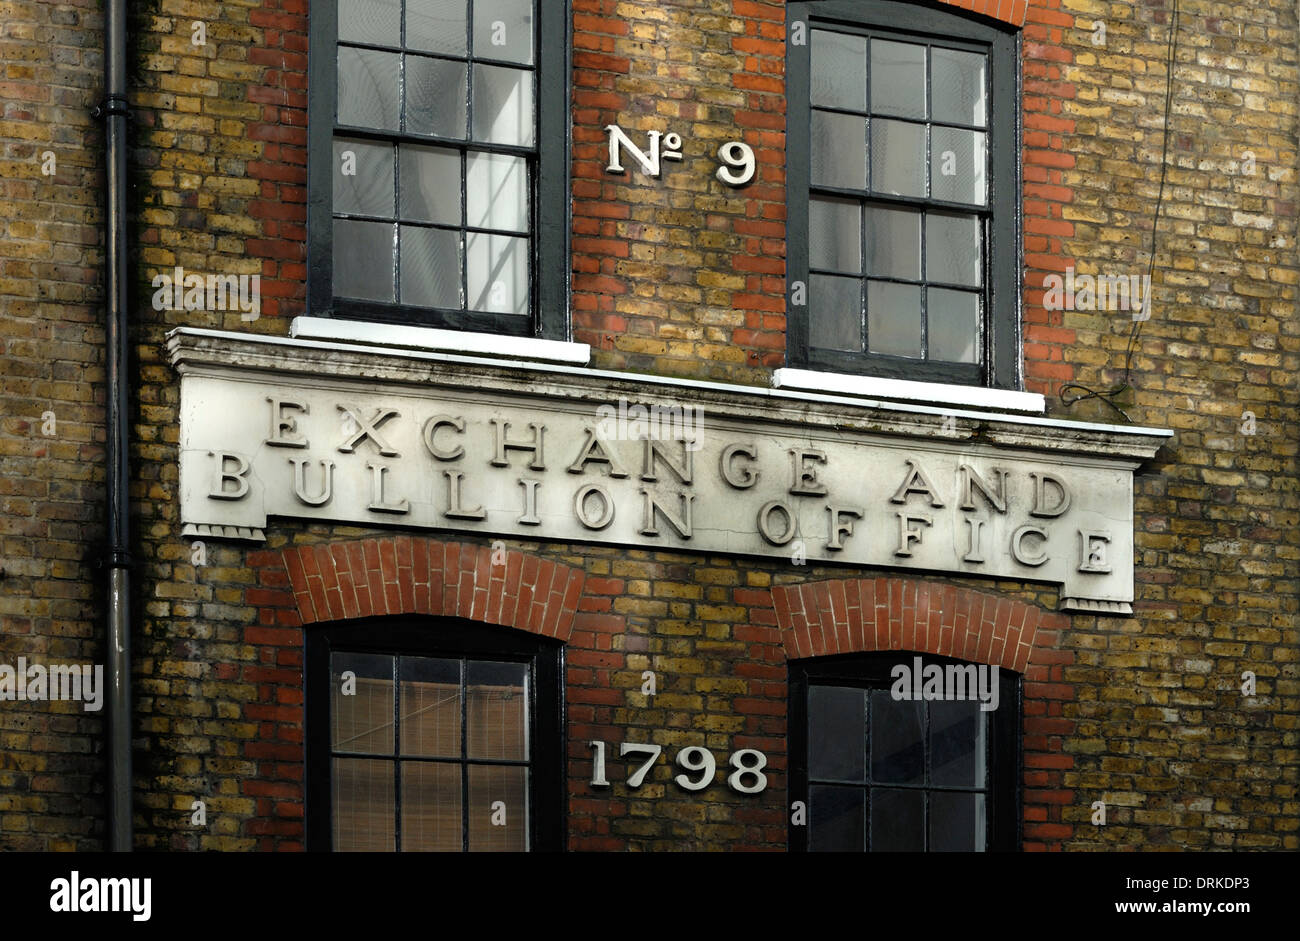 London, England, UK. Exchange and Bullion Office, 9 Wardour Street. Occupied by Benjamin Smart in 18thC - Stock Image